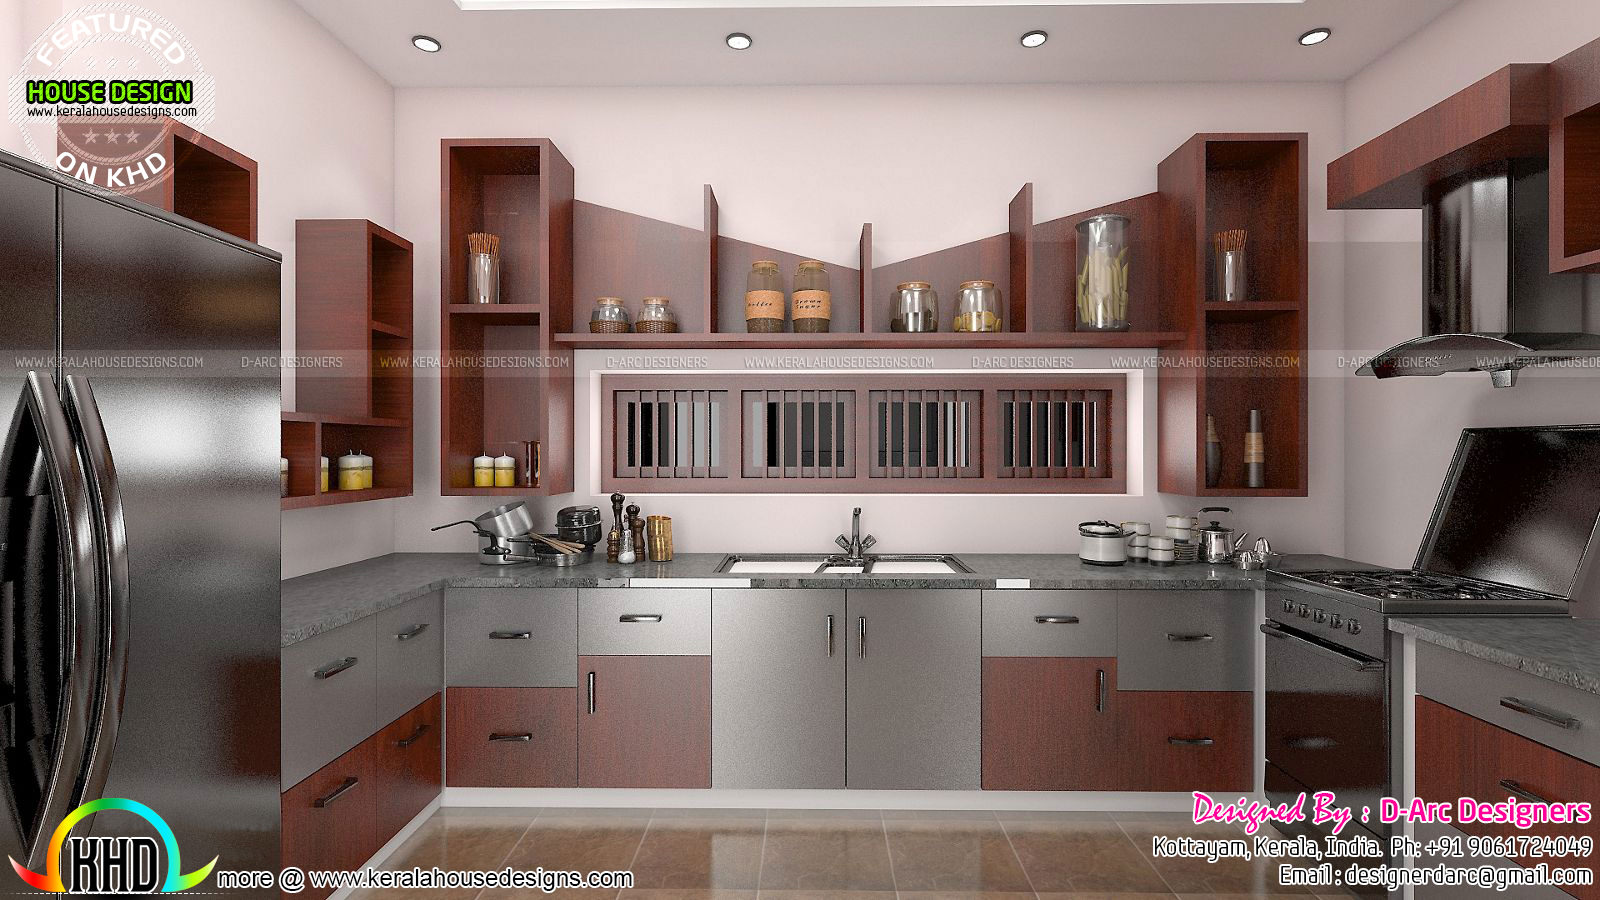 2016 modern interiors design trends kerala home design and floor plans Modern houses interior kitchen